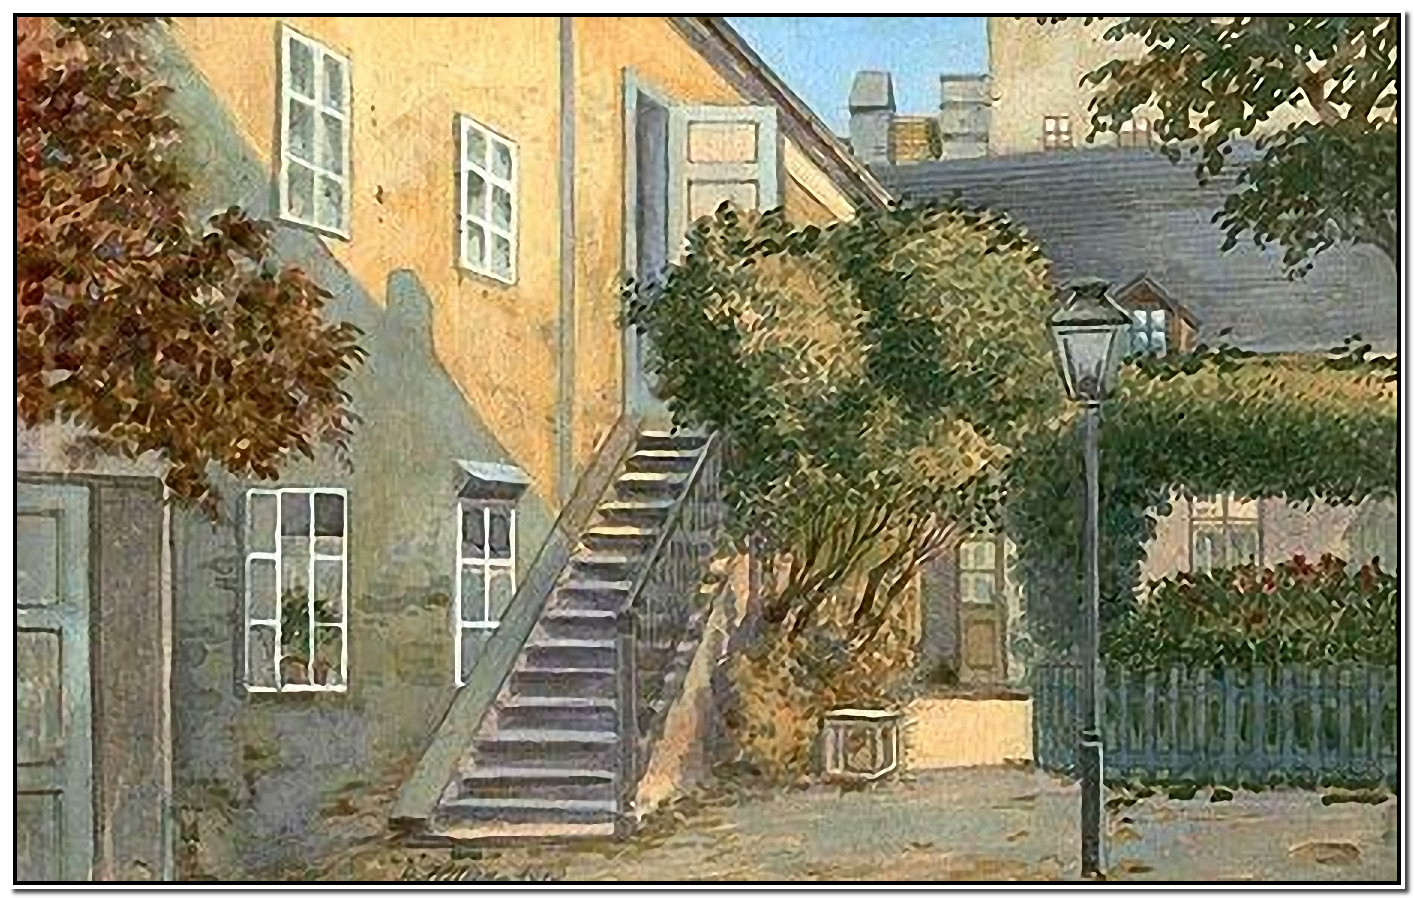 Paintings by Adolf Hitler - Wikipedia